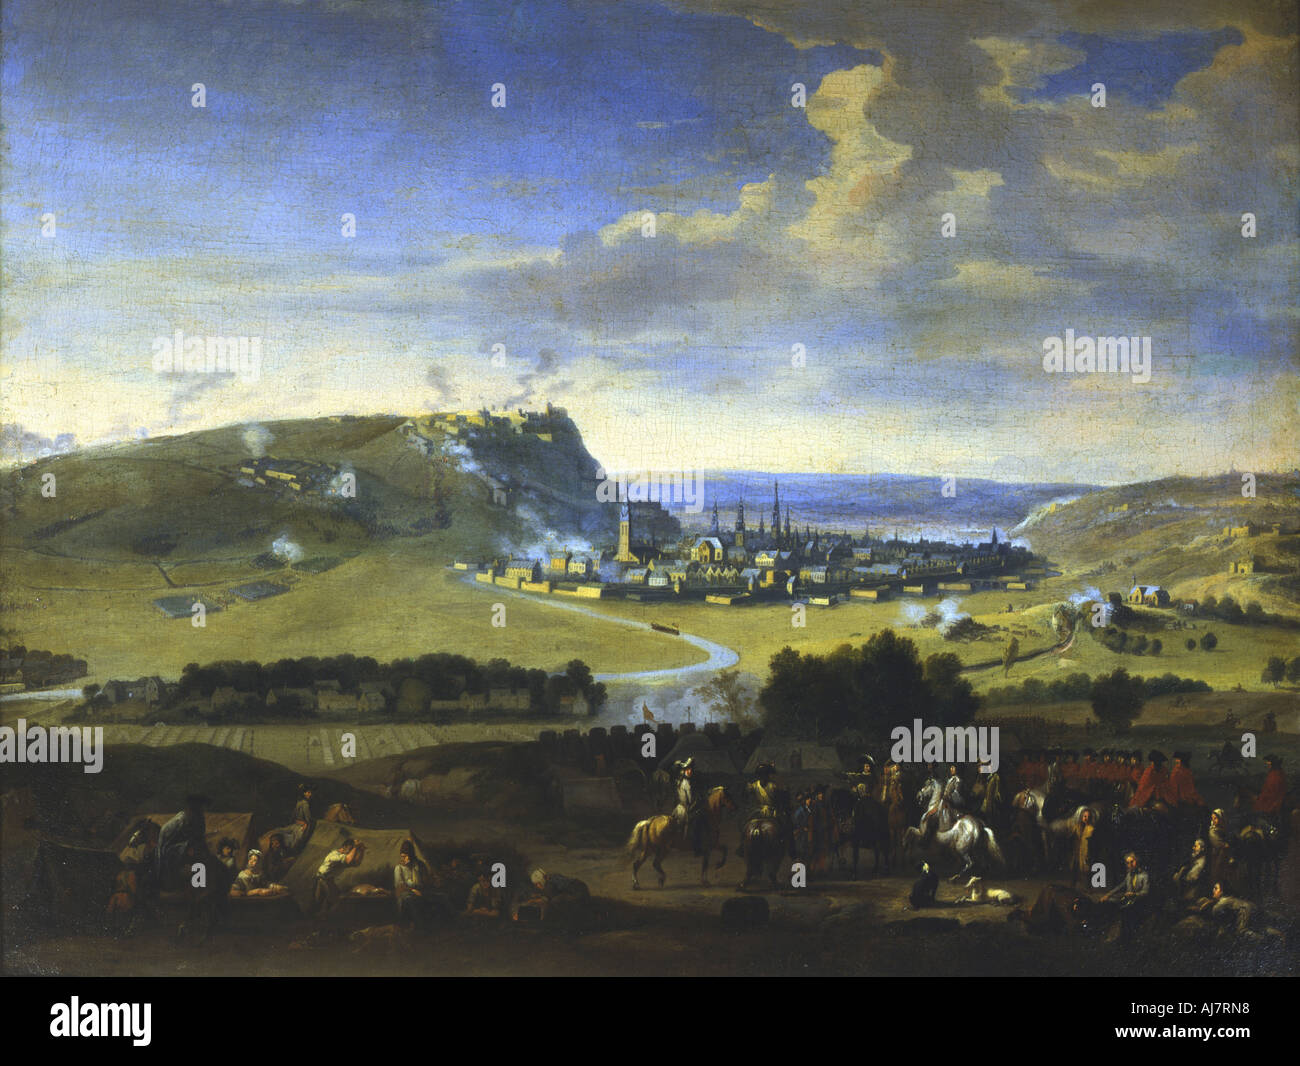 The Siege of Namur scene before the final attack 5 August 1695  - Stock Image